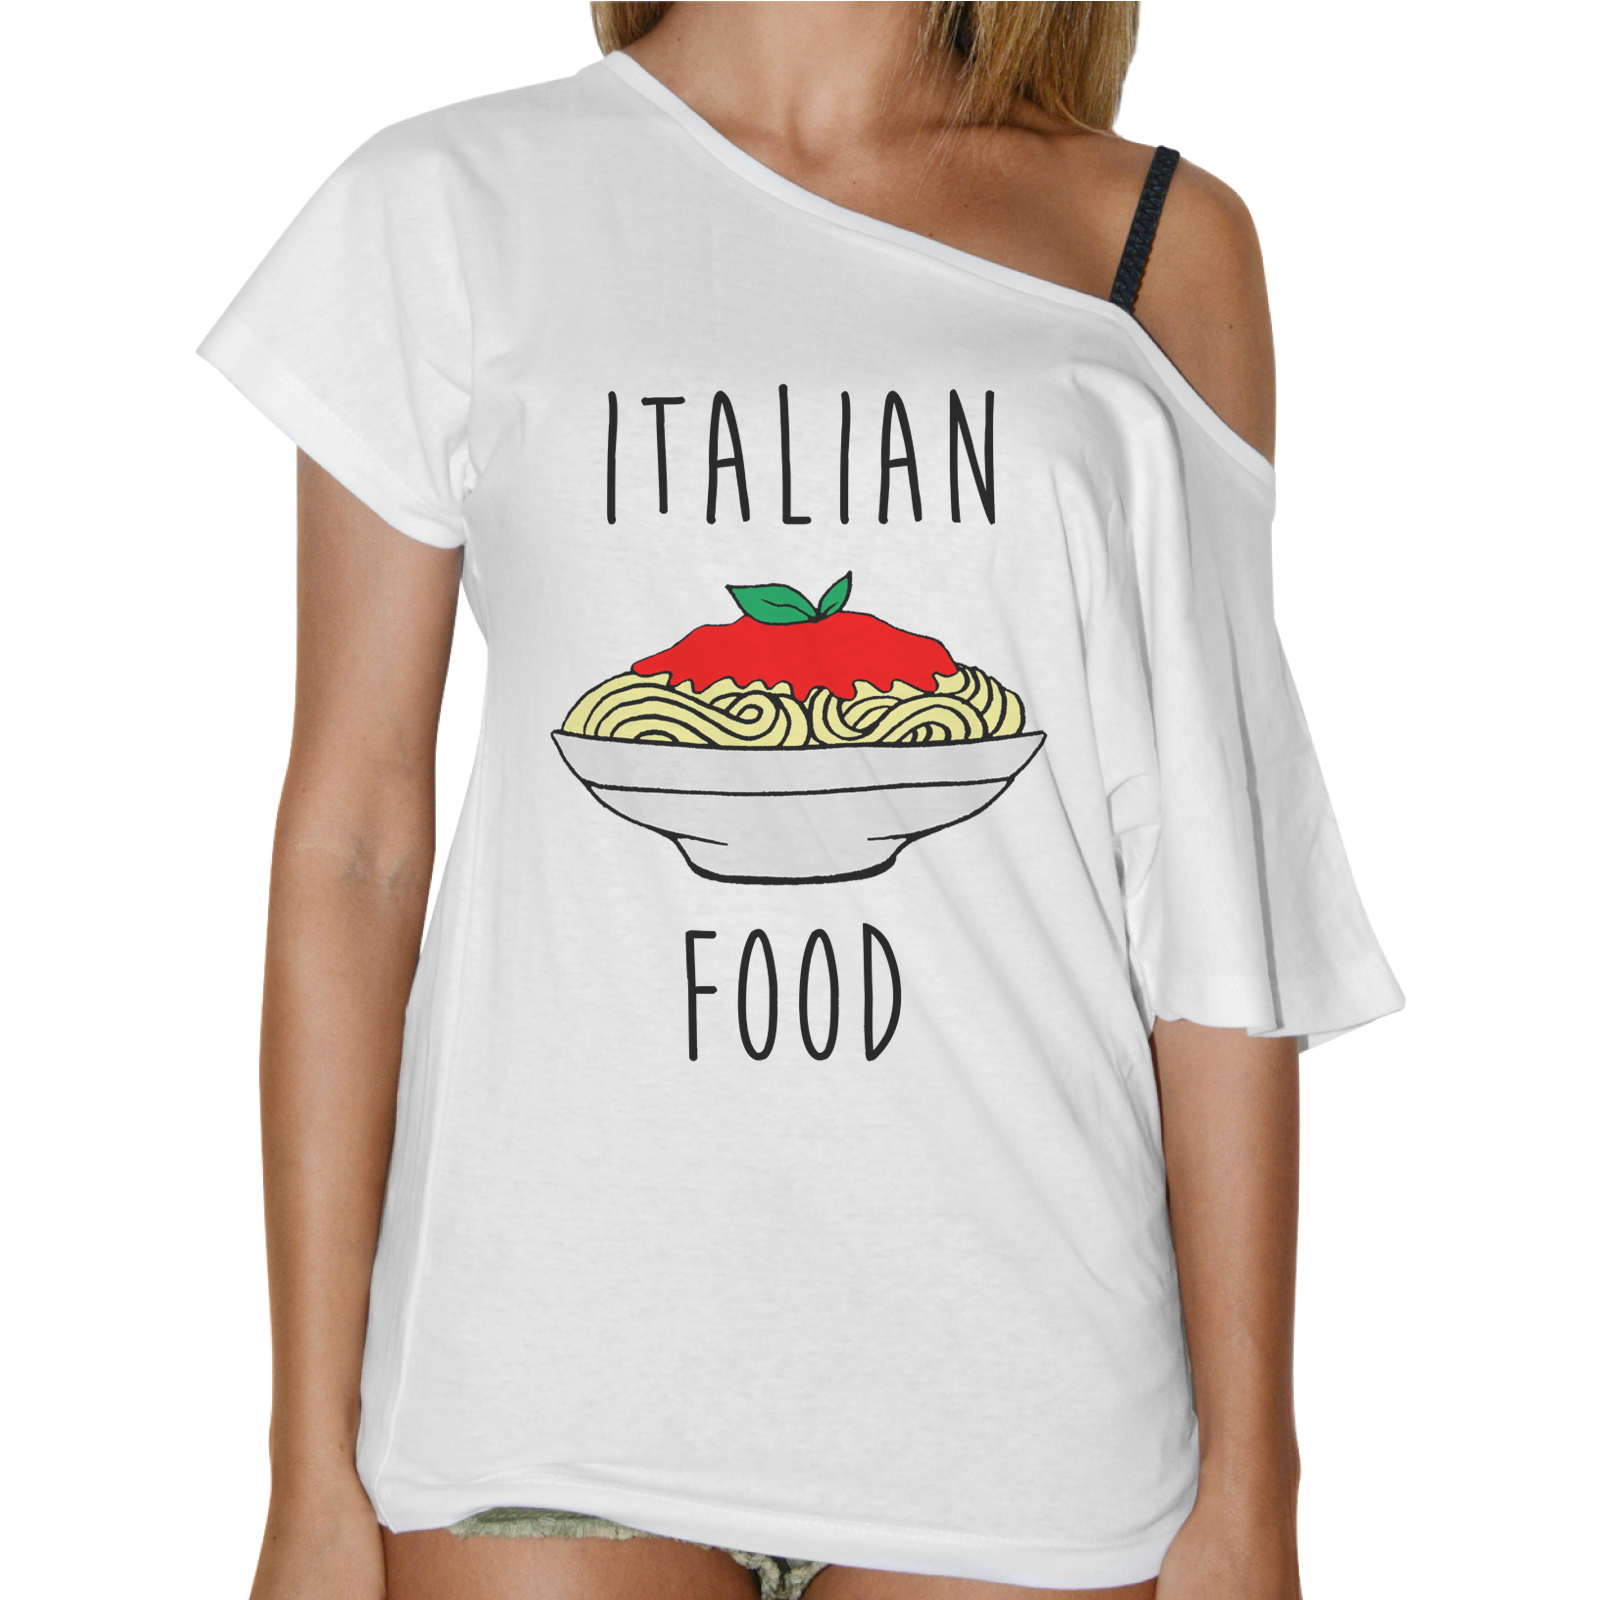 T-Shirt Donna Collo Barca ITALIAN FOOD